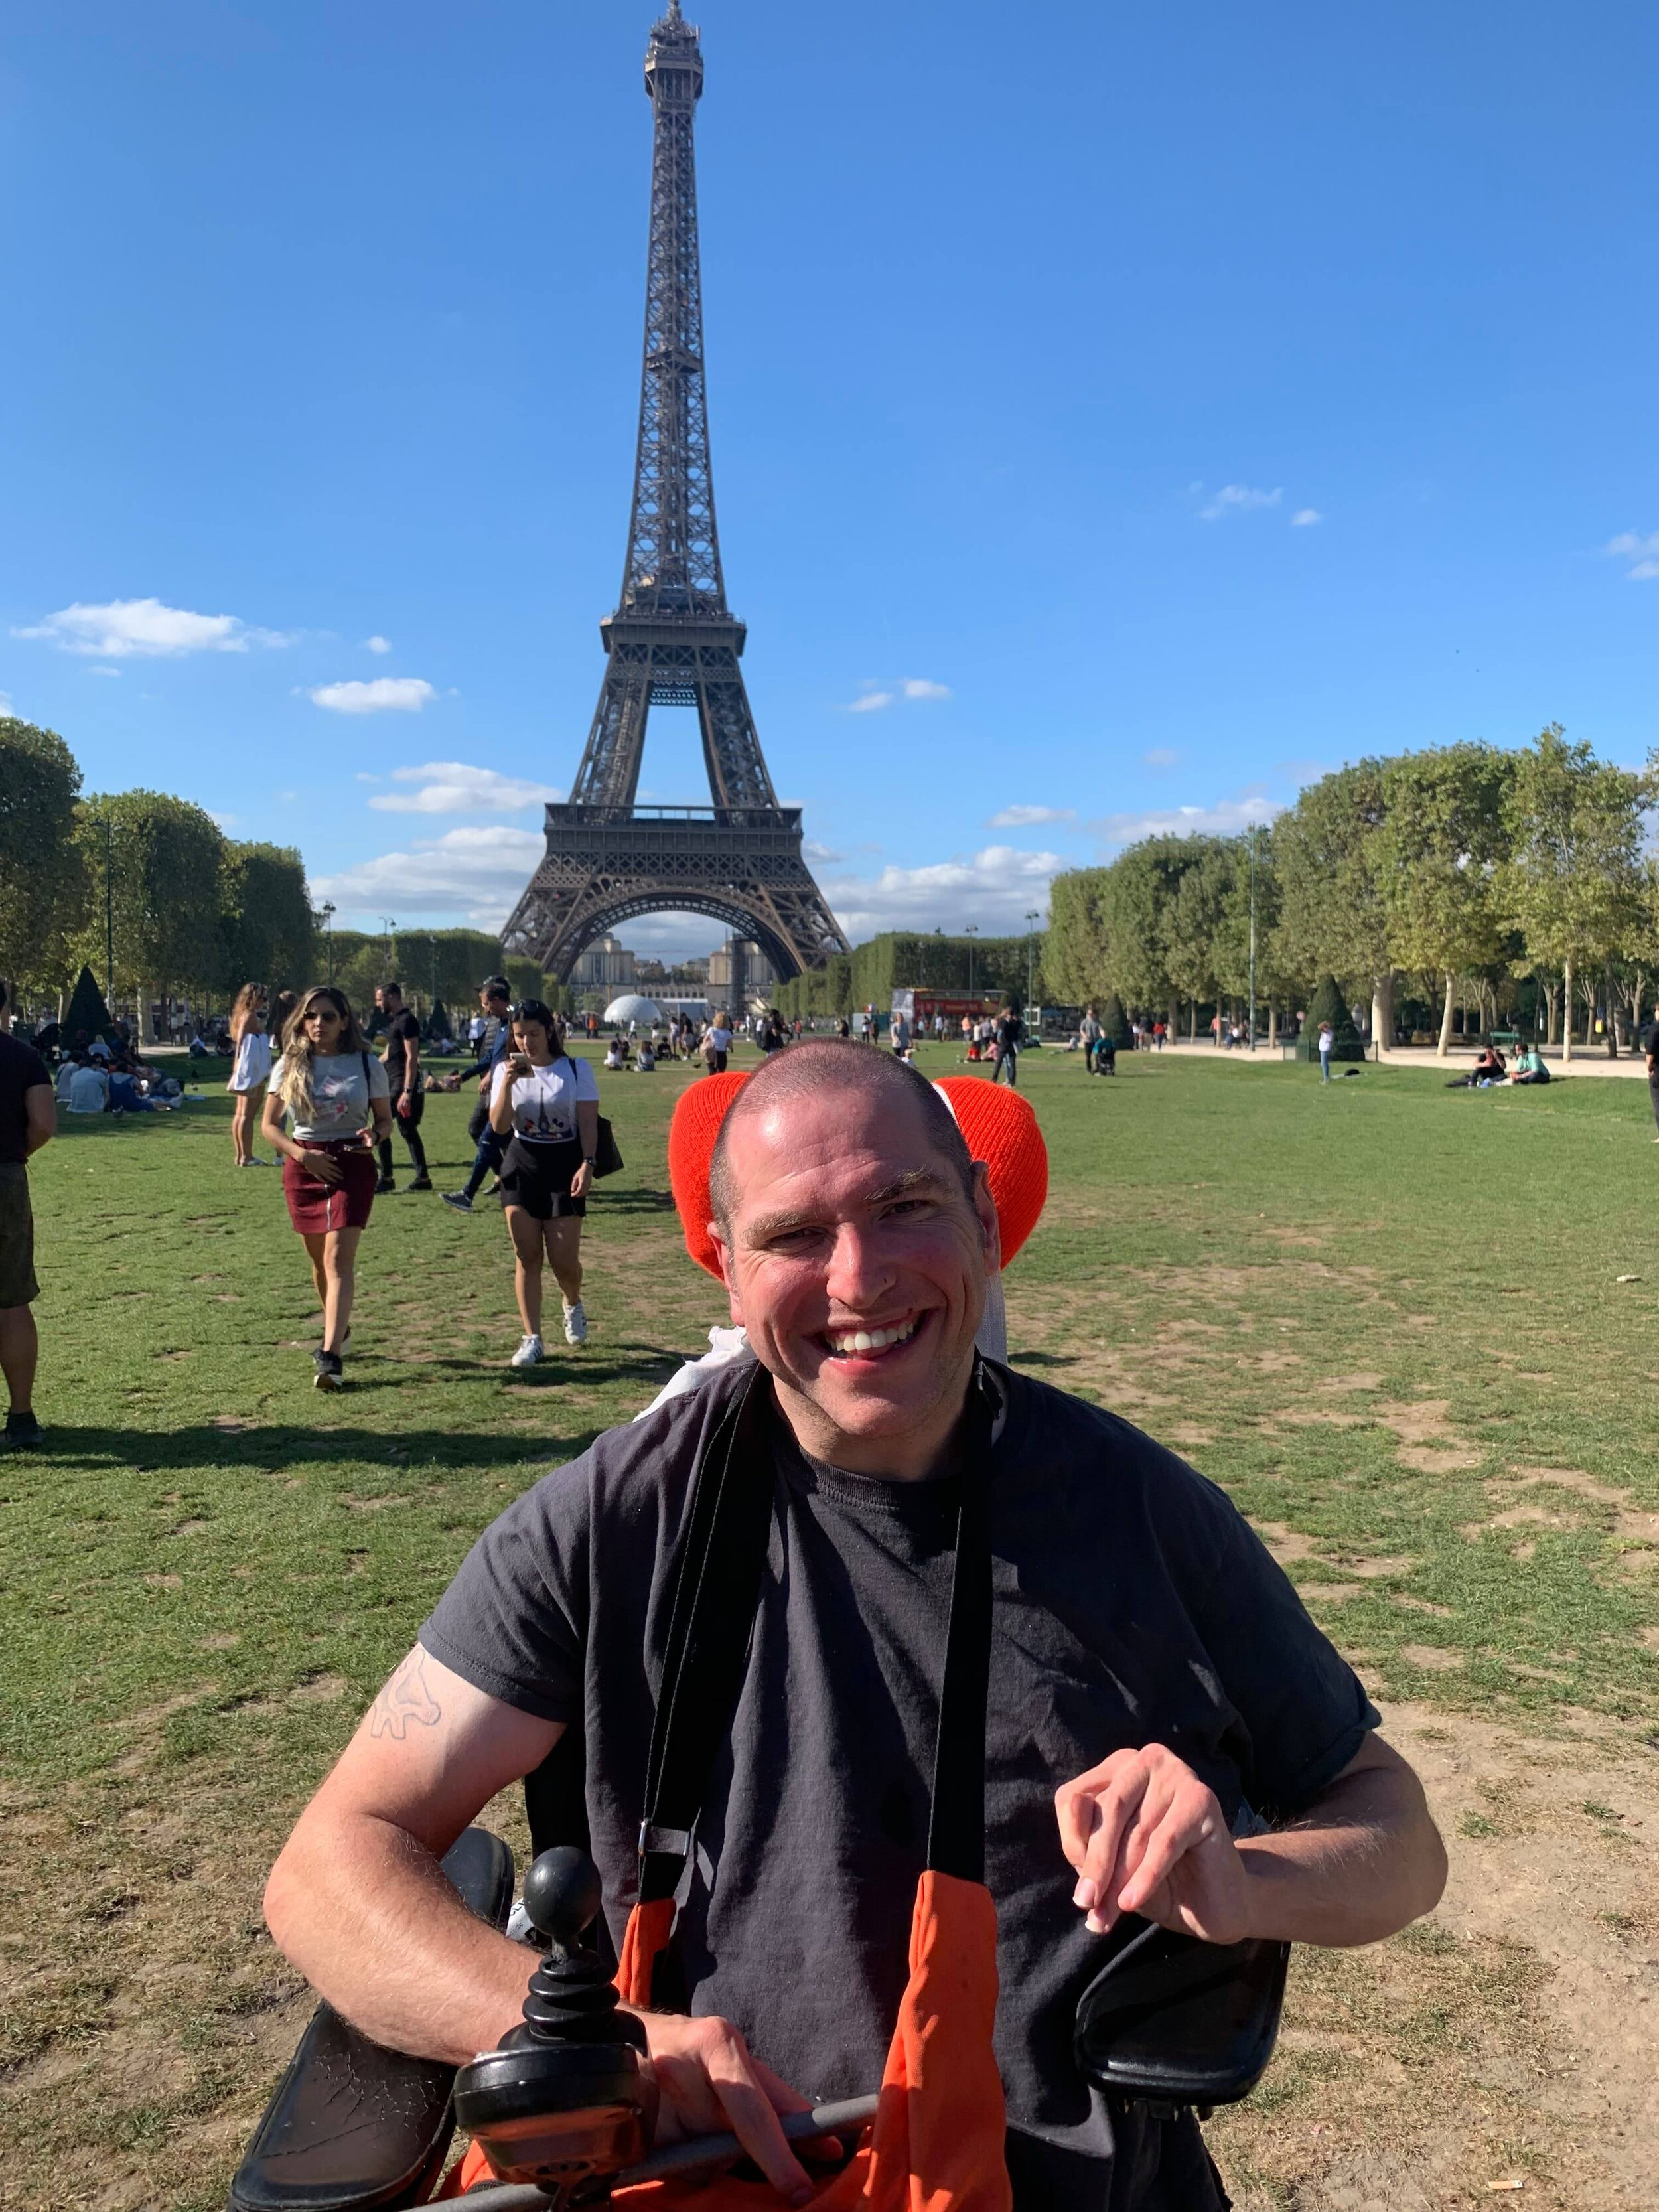 Andrew on his recent trip to Paris, France.